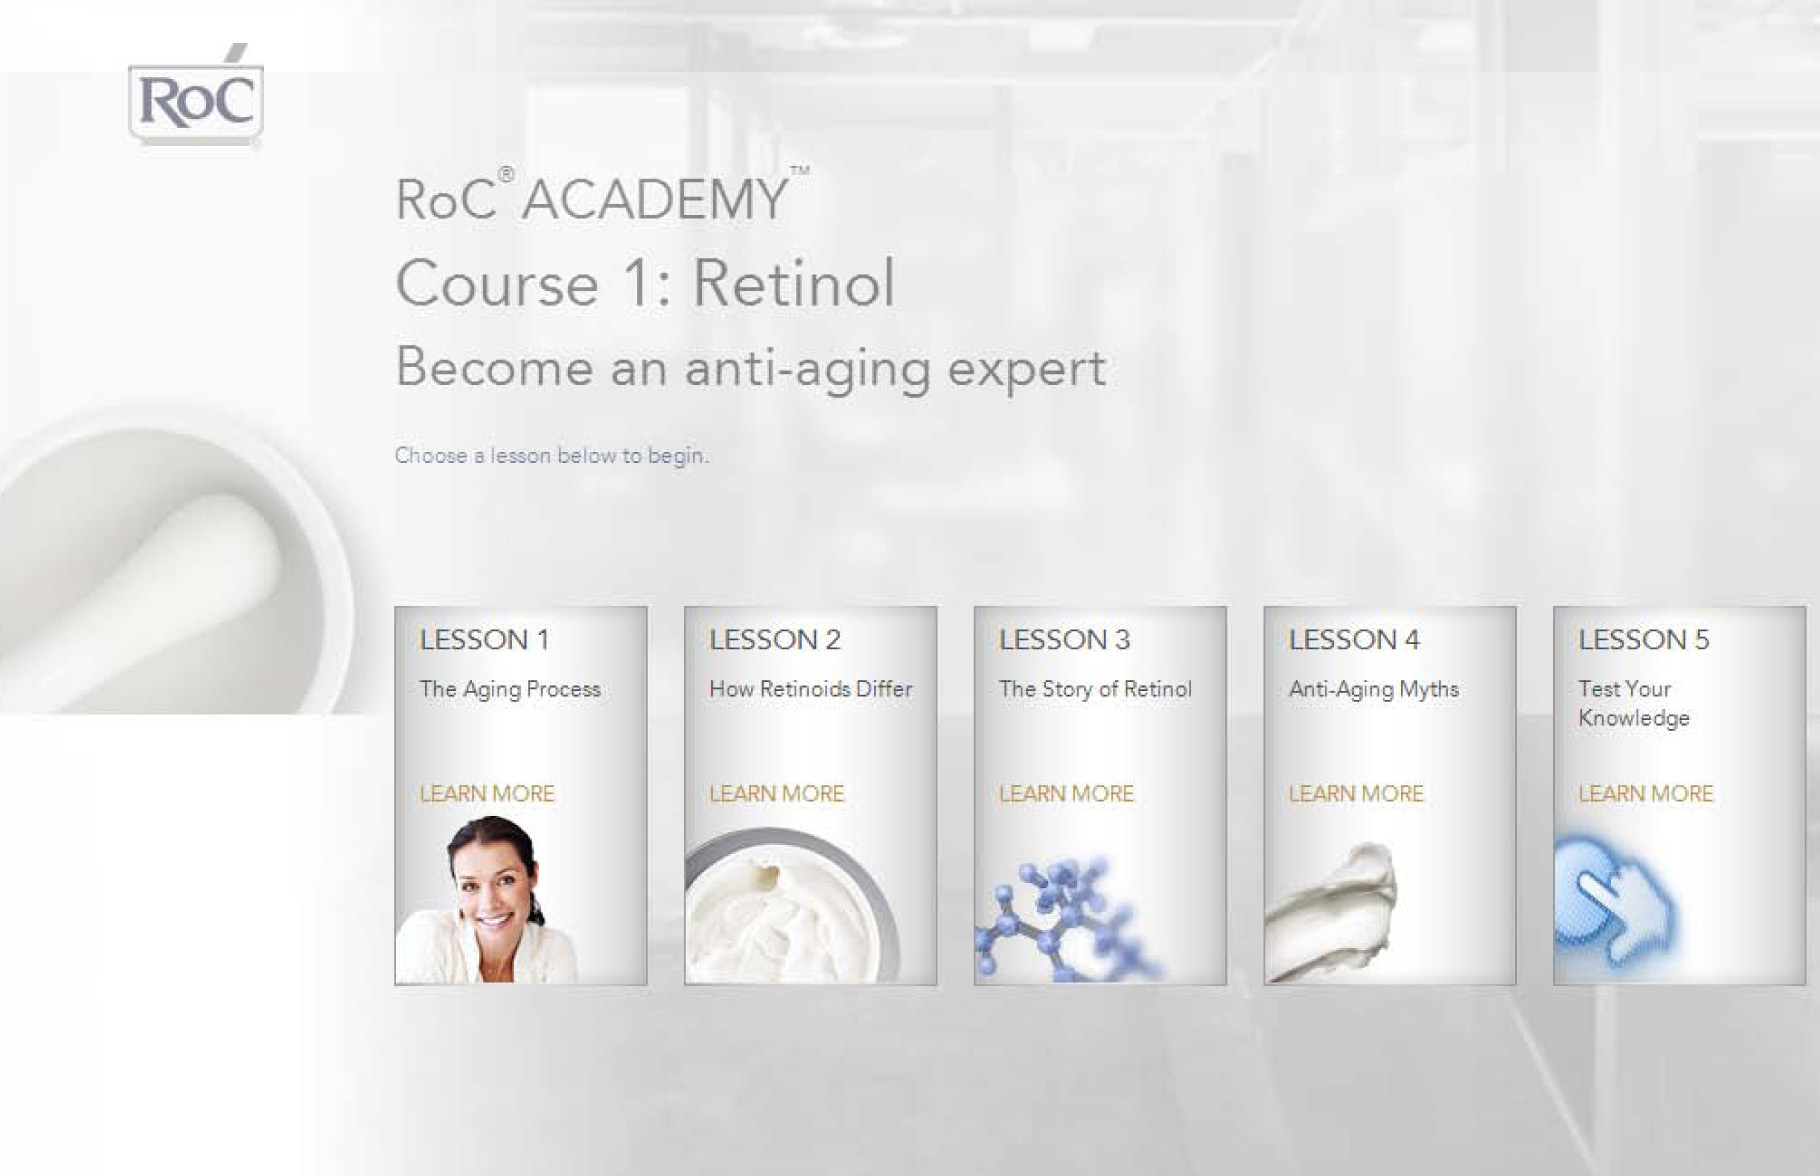 Introducing RoC Academy: Get Insider Access To The Latest Anti-Aging Technology